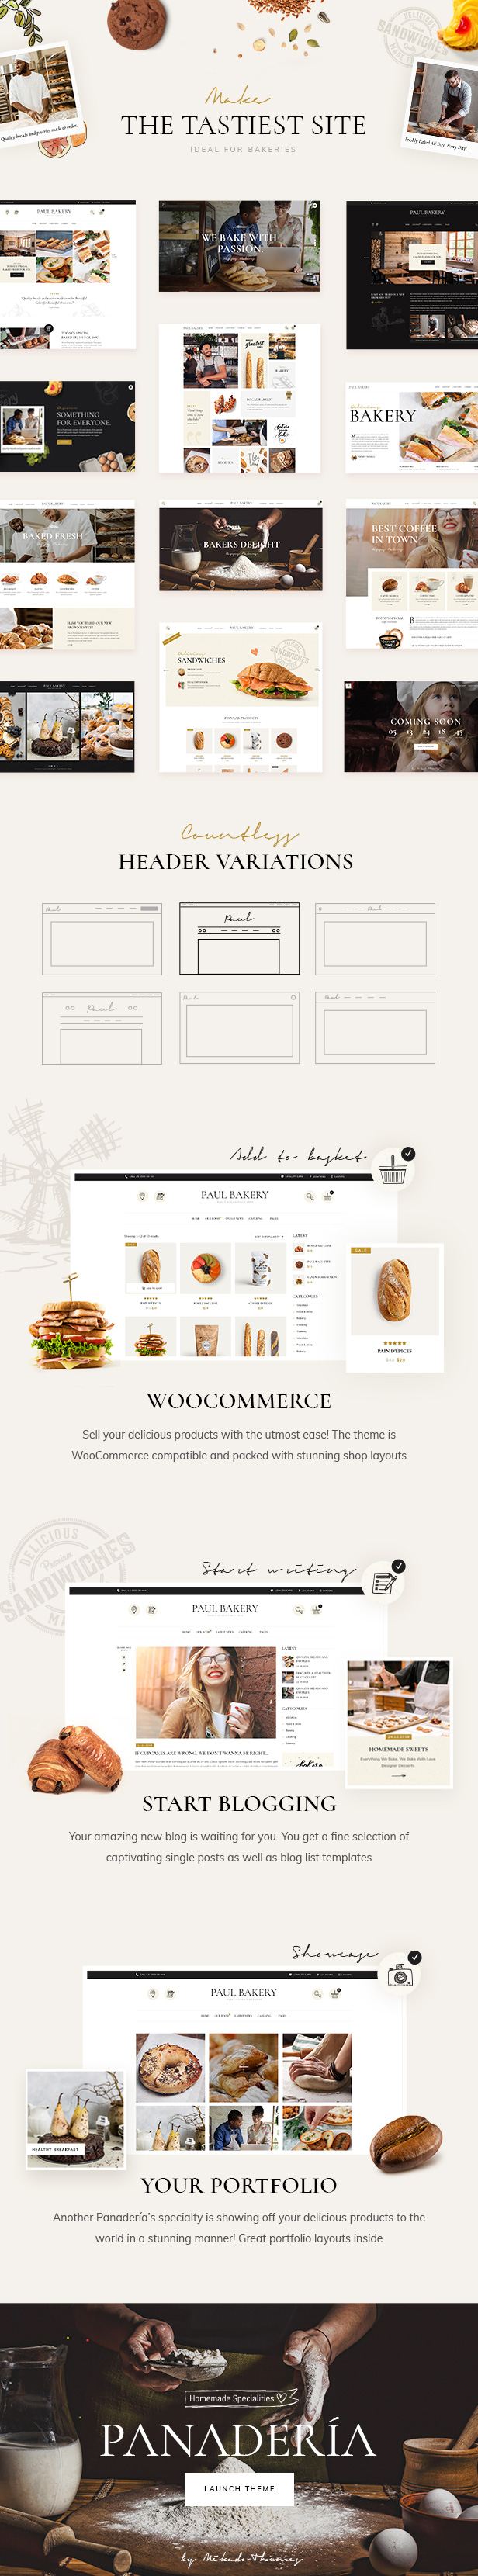 Panadería - Bakery and Pastry Shop Theme - 1